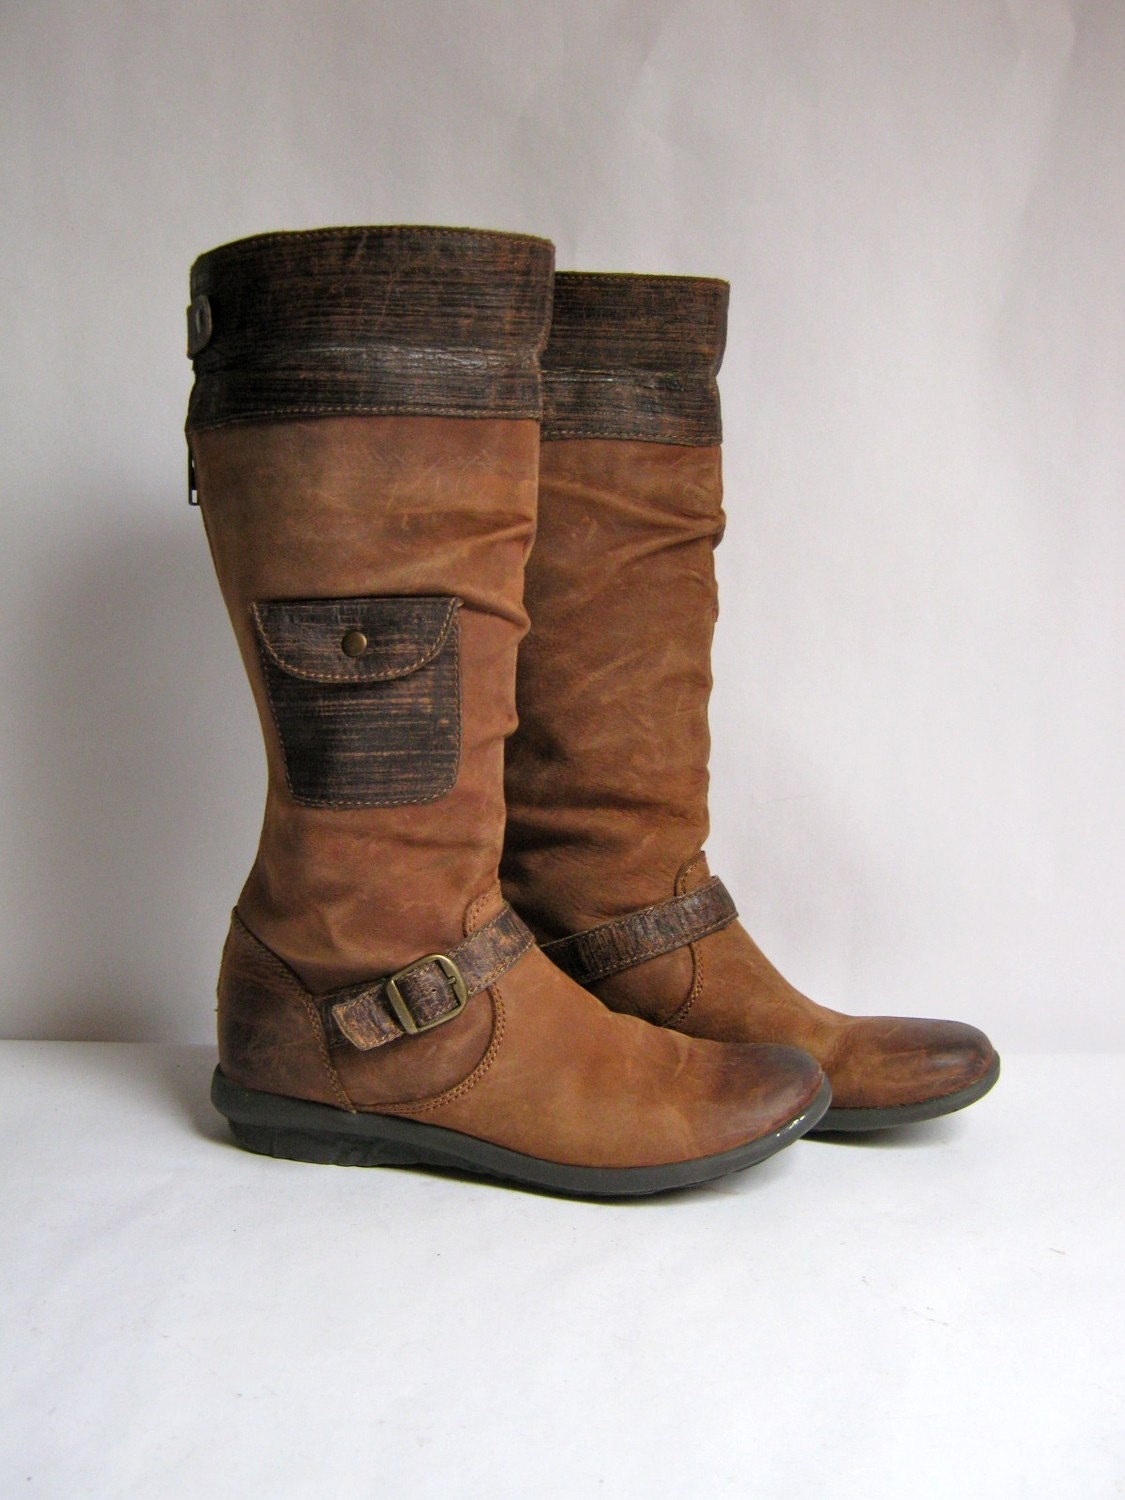 Tall Brown Leather Ruff Hewn Riding Boots By